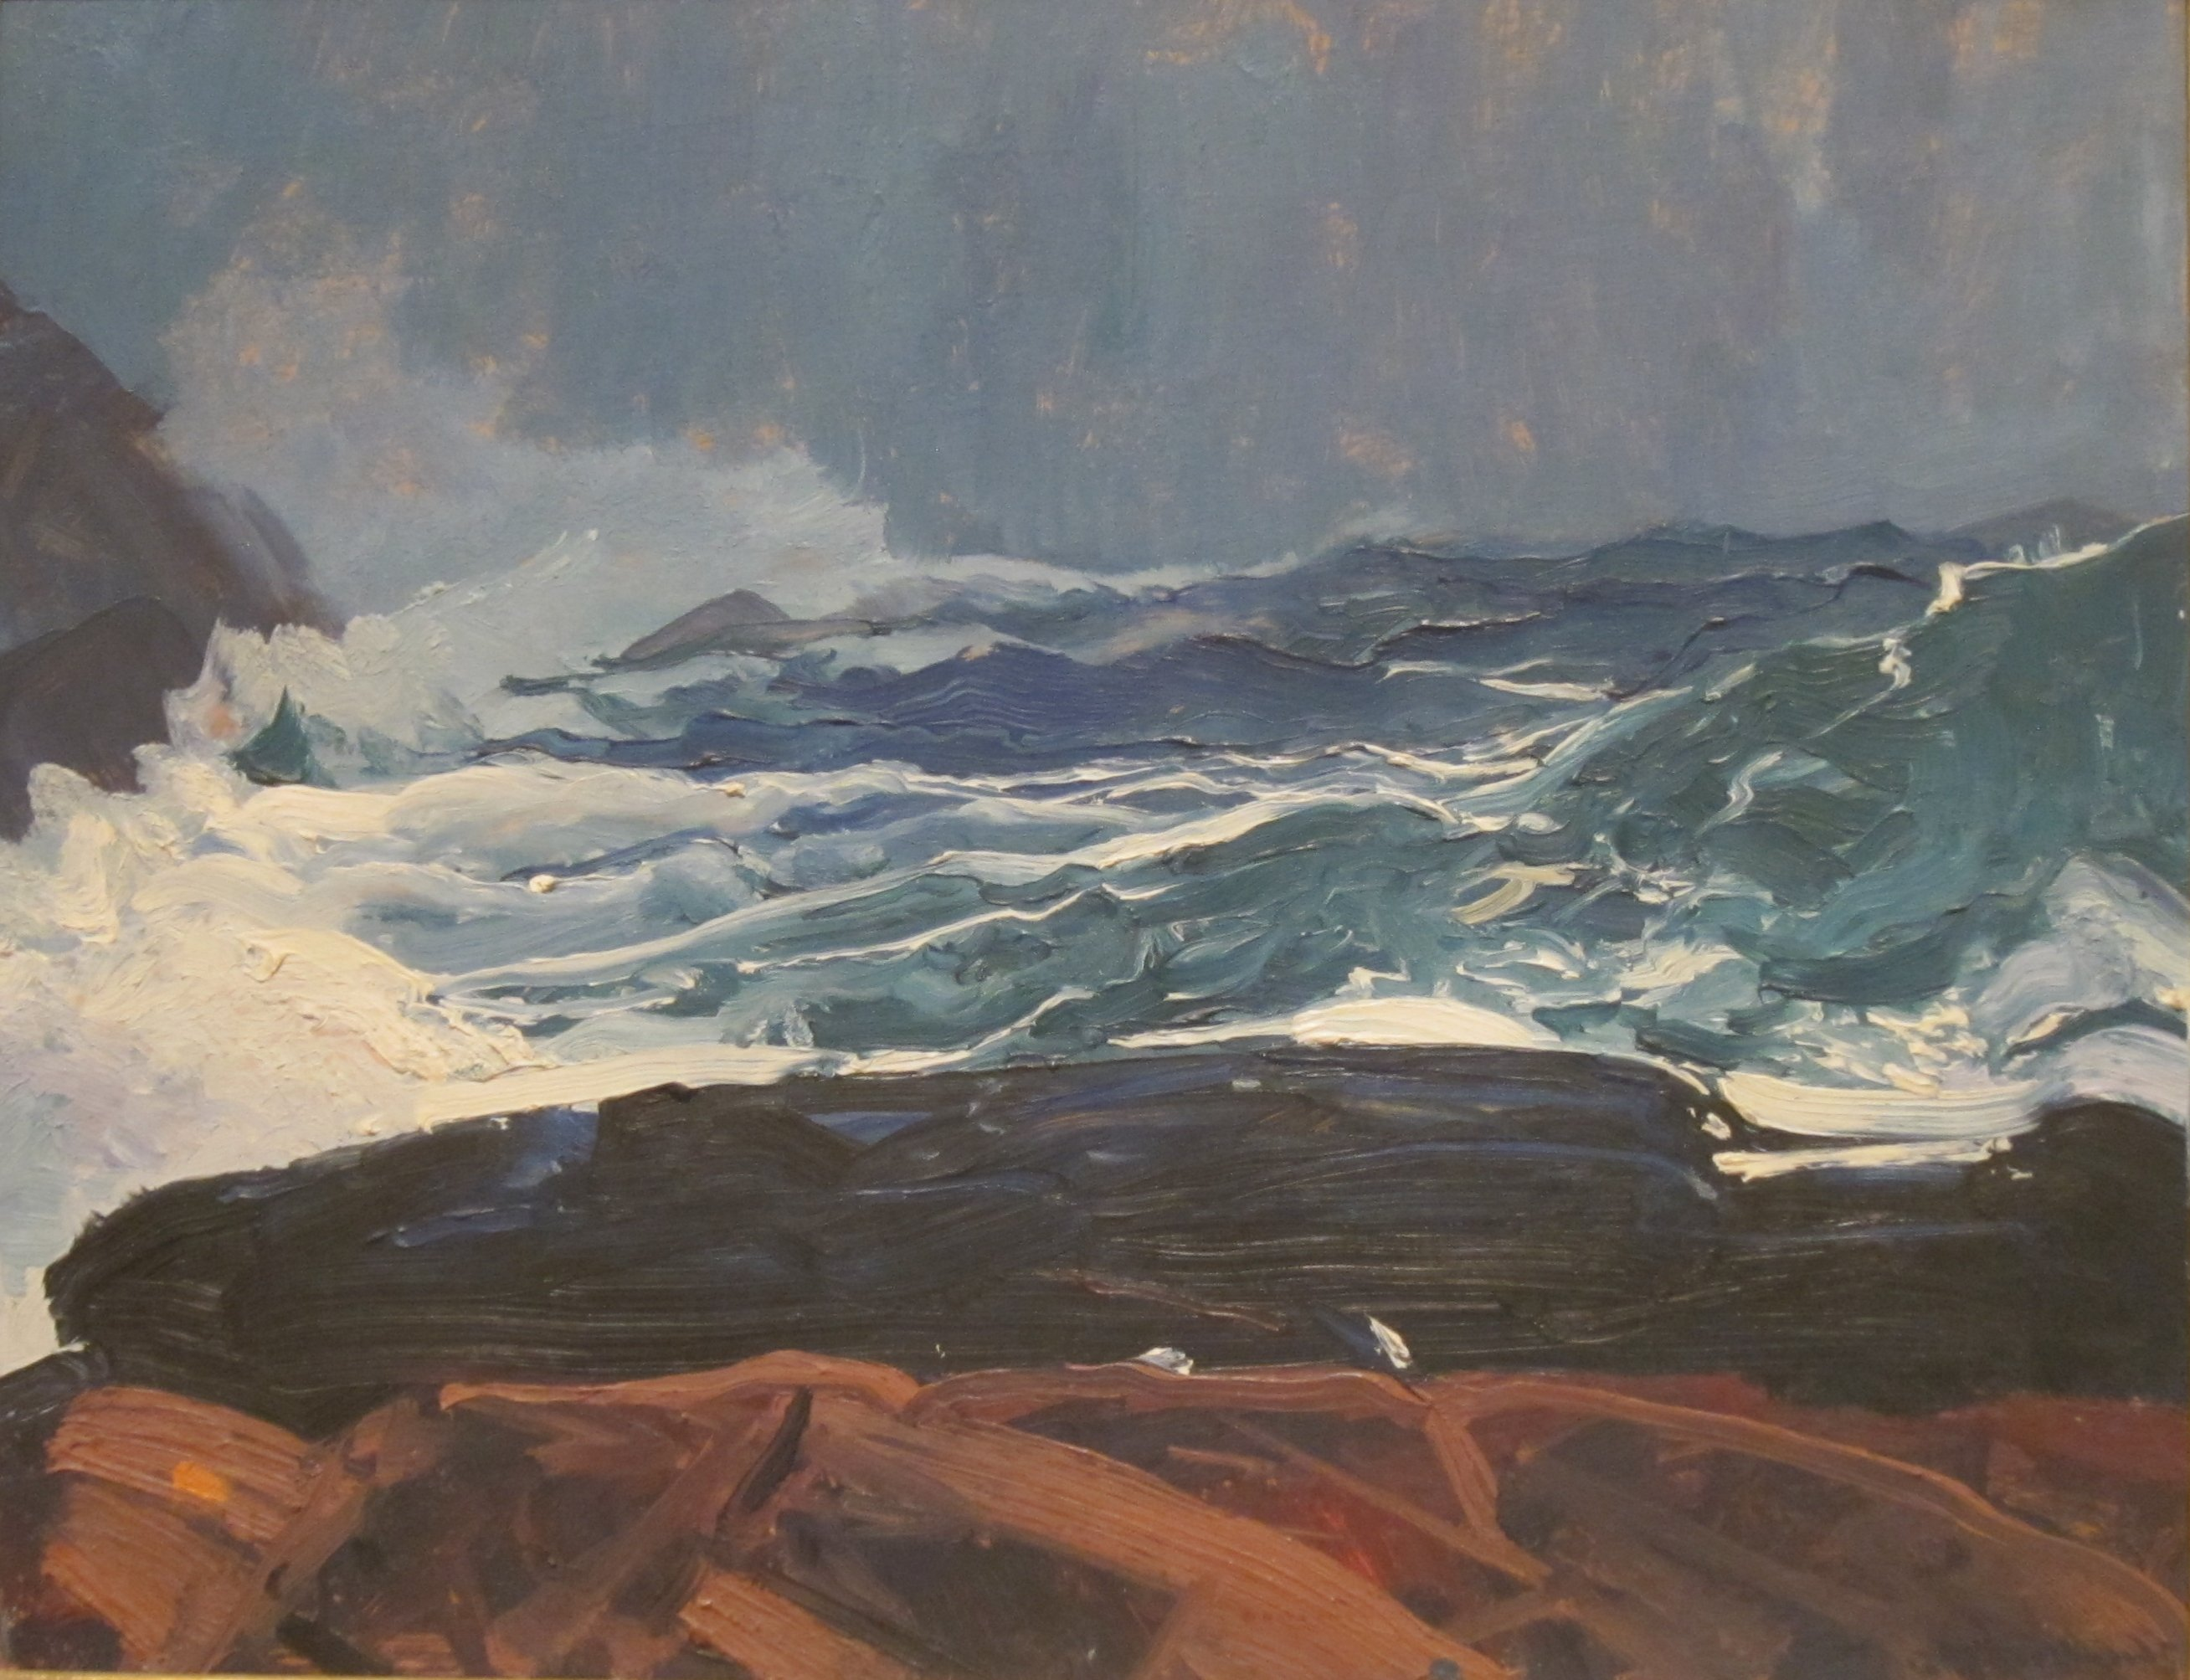 File:Lobster Cove, Monhegan, Maine by George Bellows, San Diego Museum of Art.JPG - Wikimedia ...